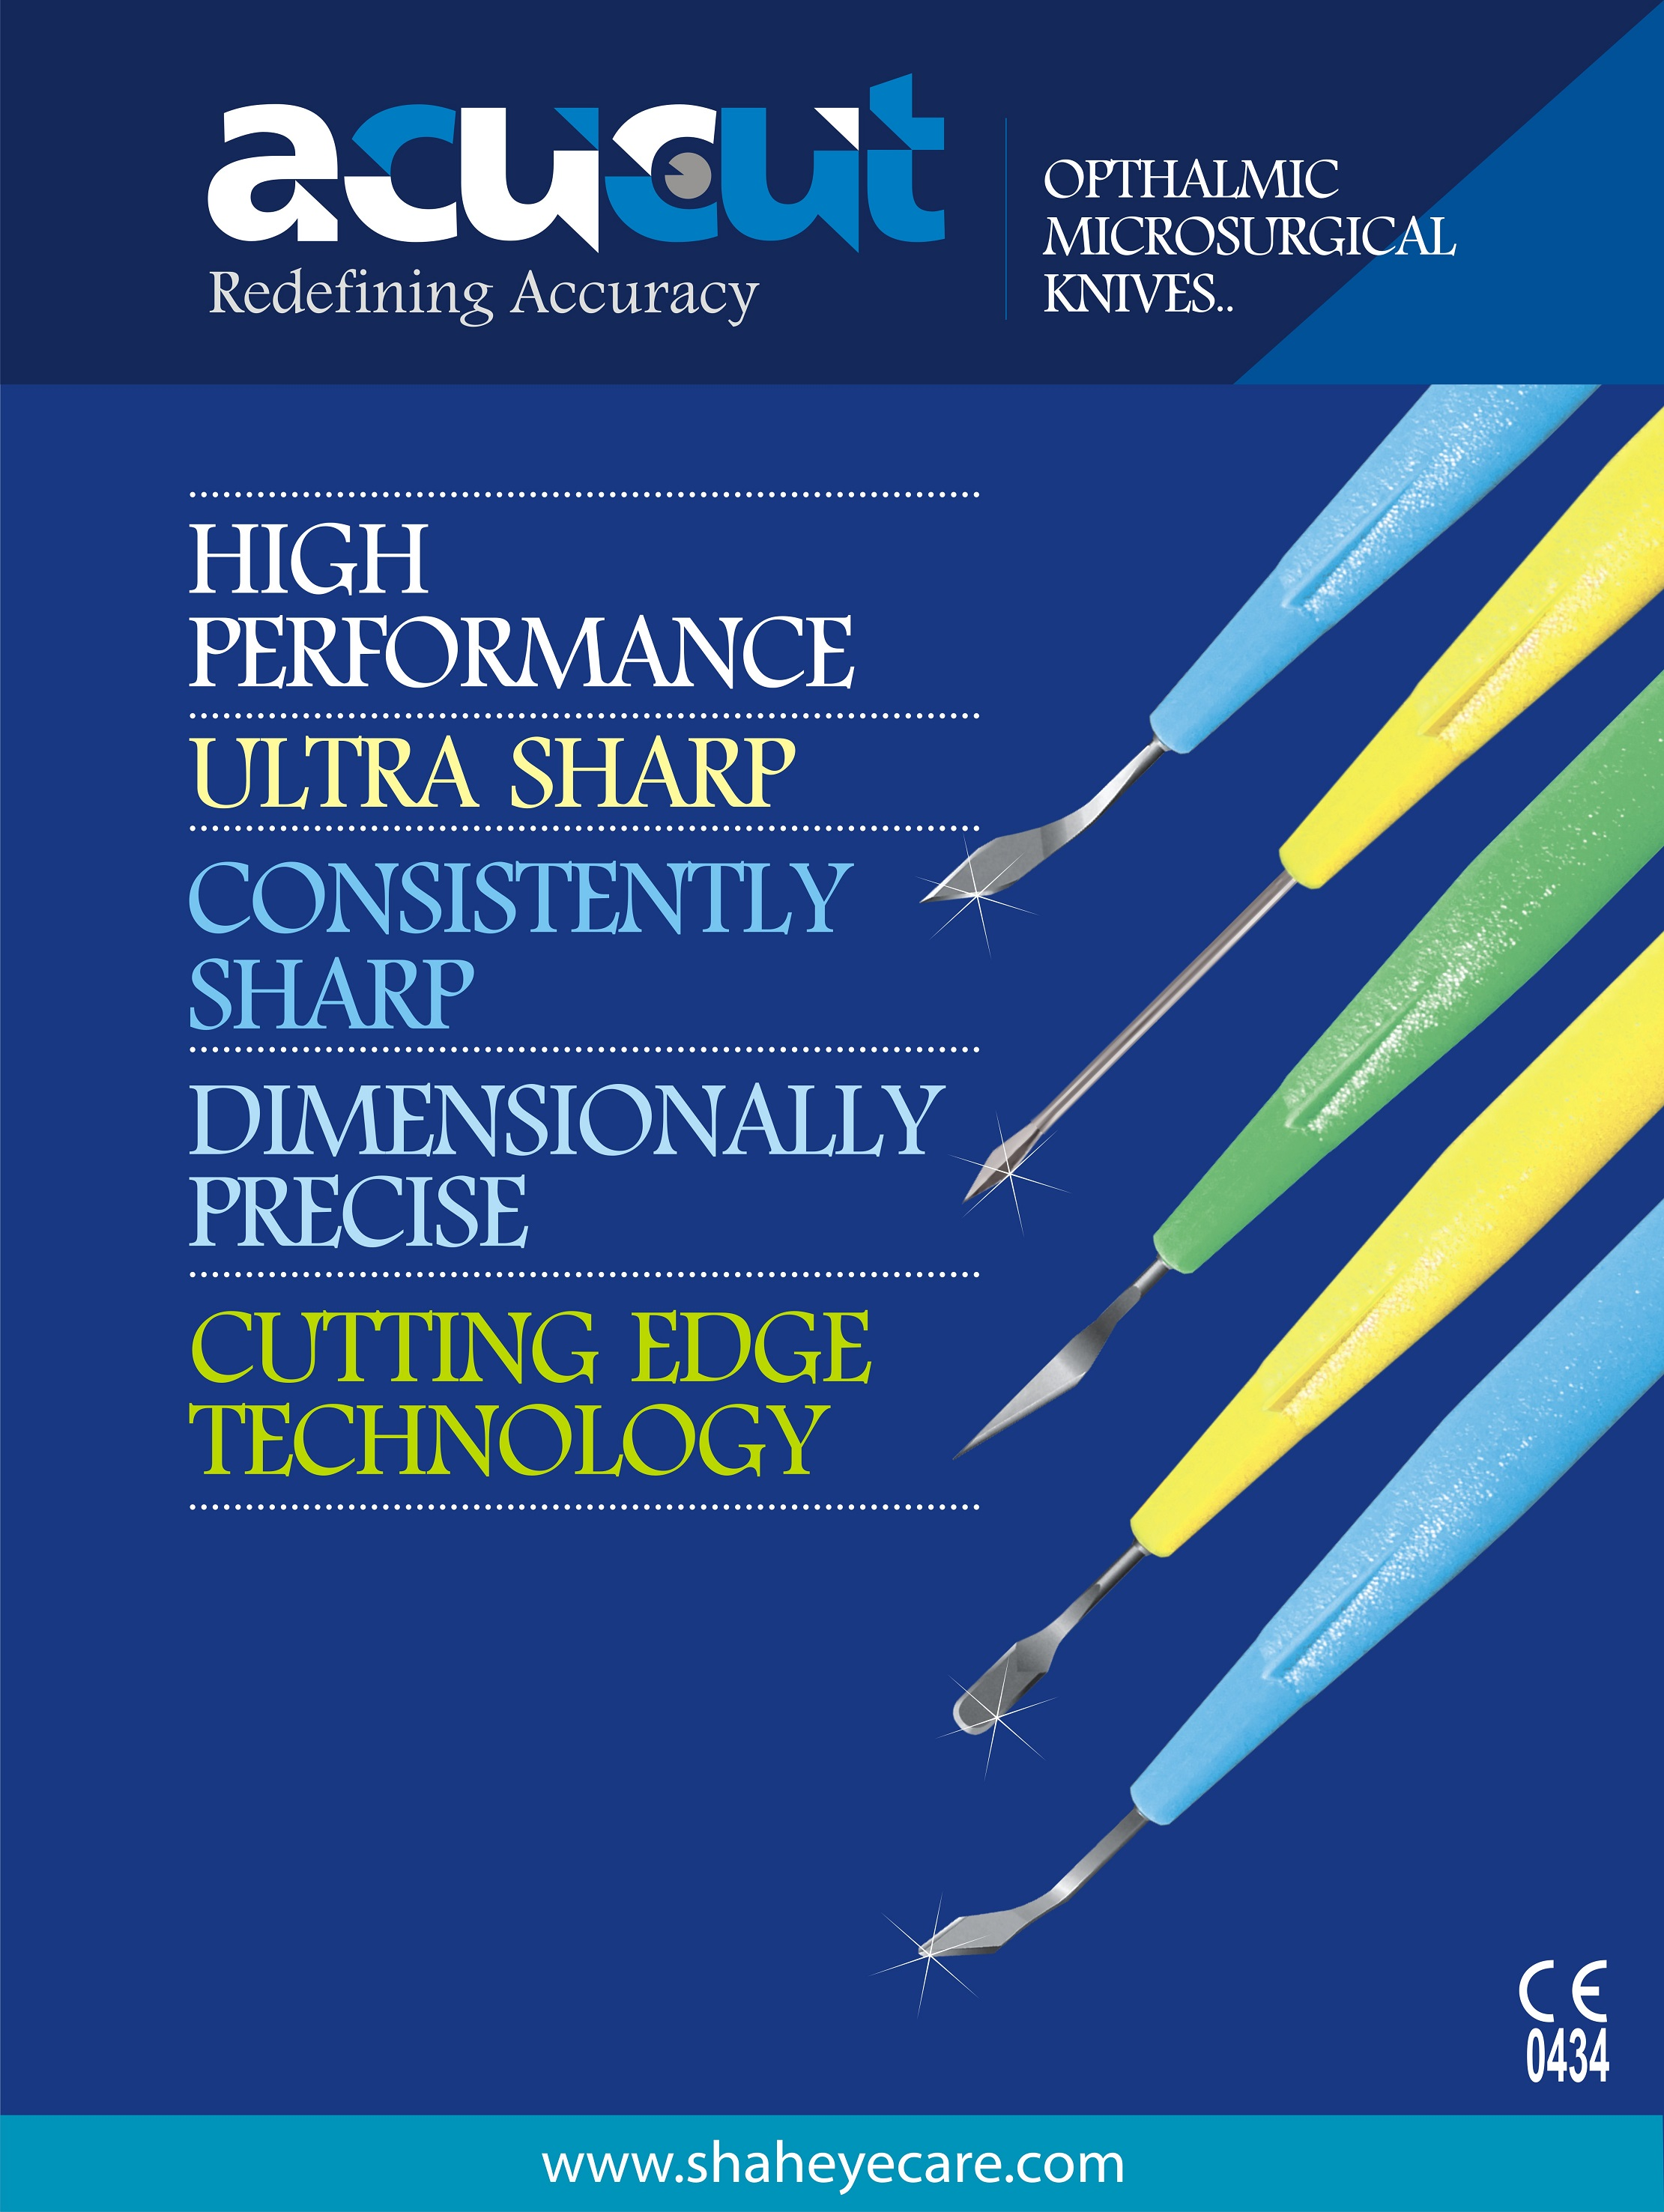 Ophthalmic micro surgical knives blades